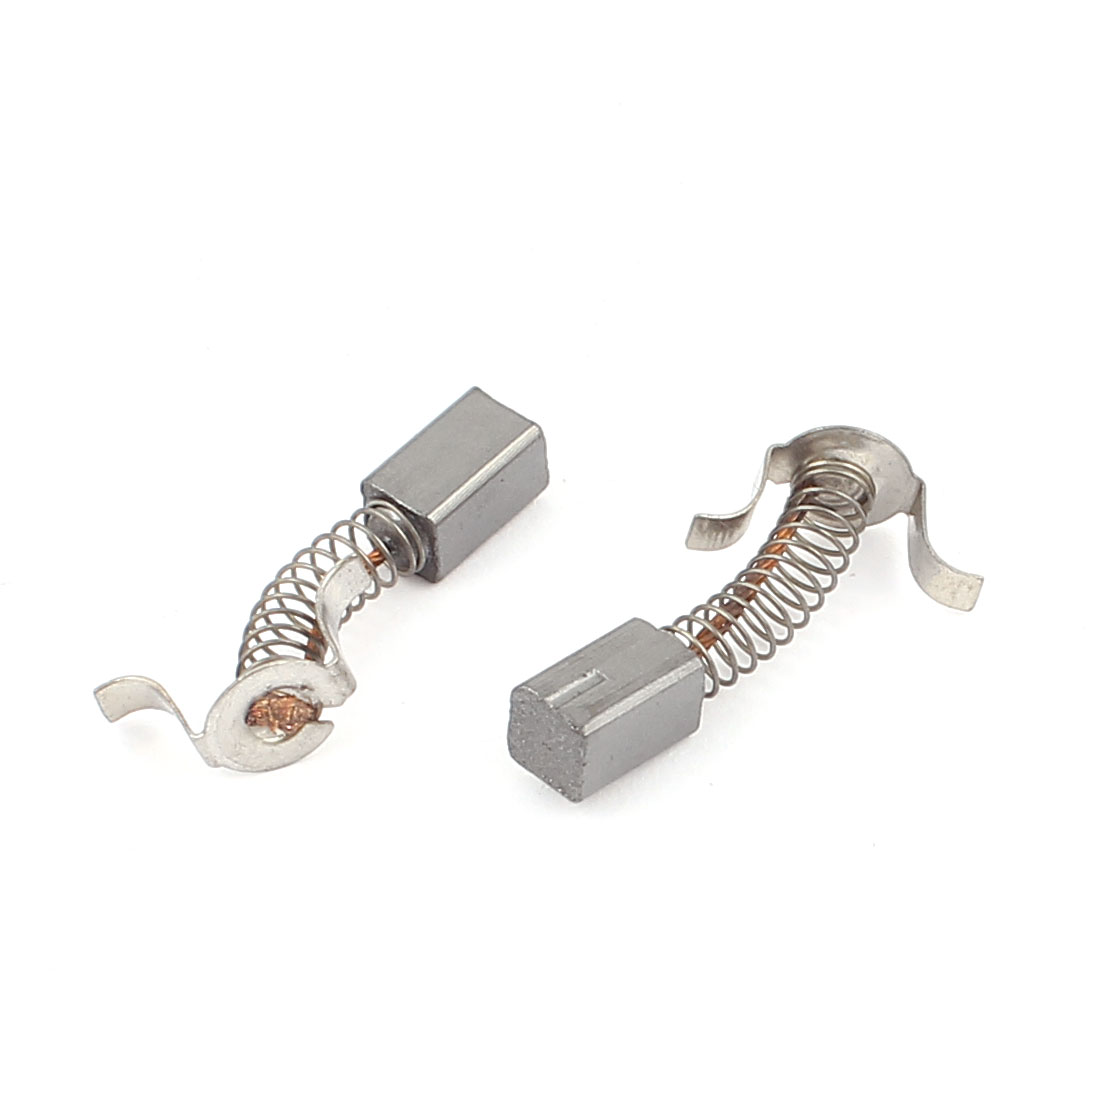 Pair Replacement Motor Carbon Brushes 7mm x 4mm x 4mm for Electric Motors